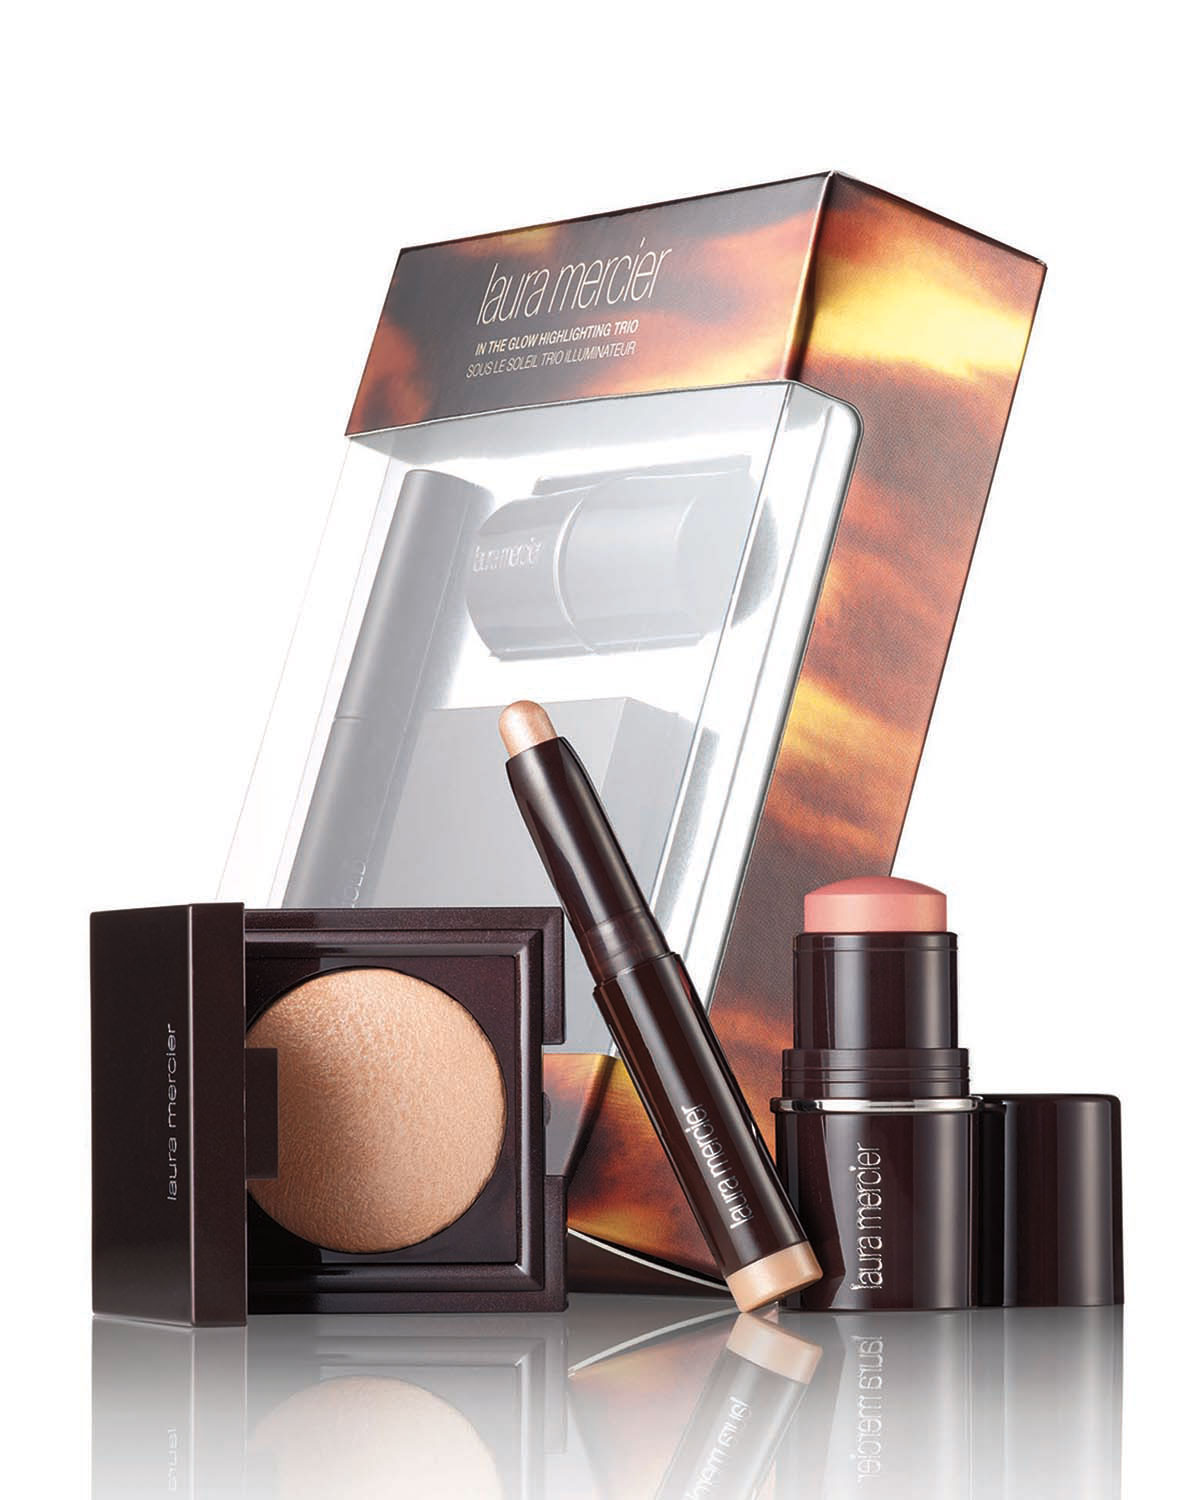 Limited Edition In the Glow Highlighting Trio ($50 Value)